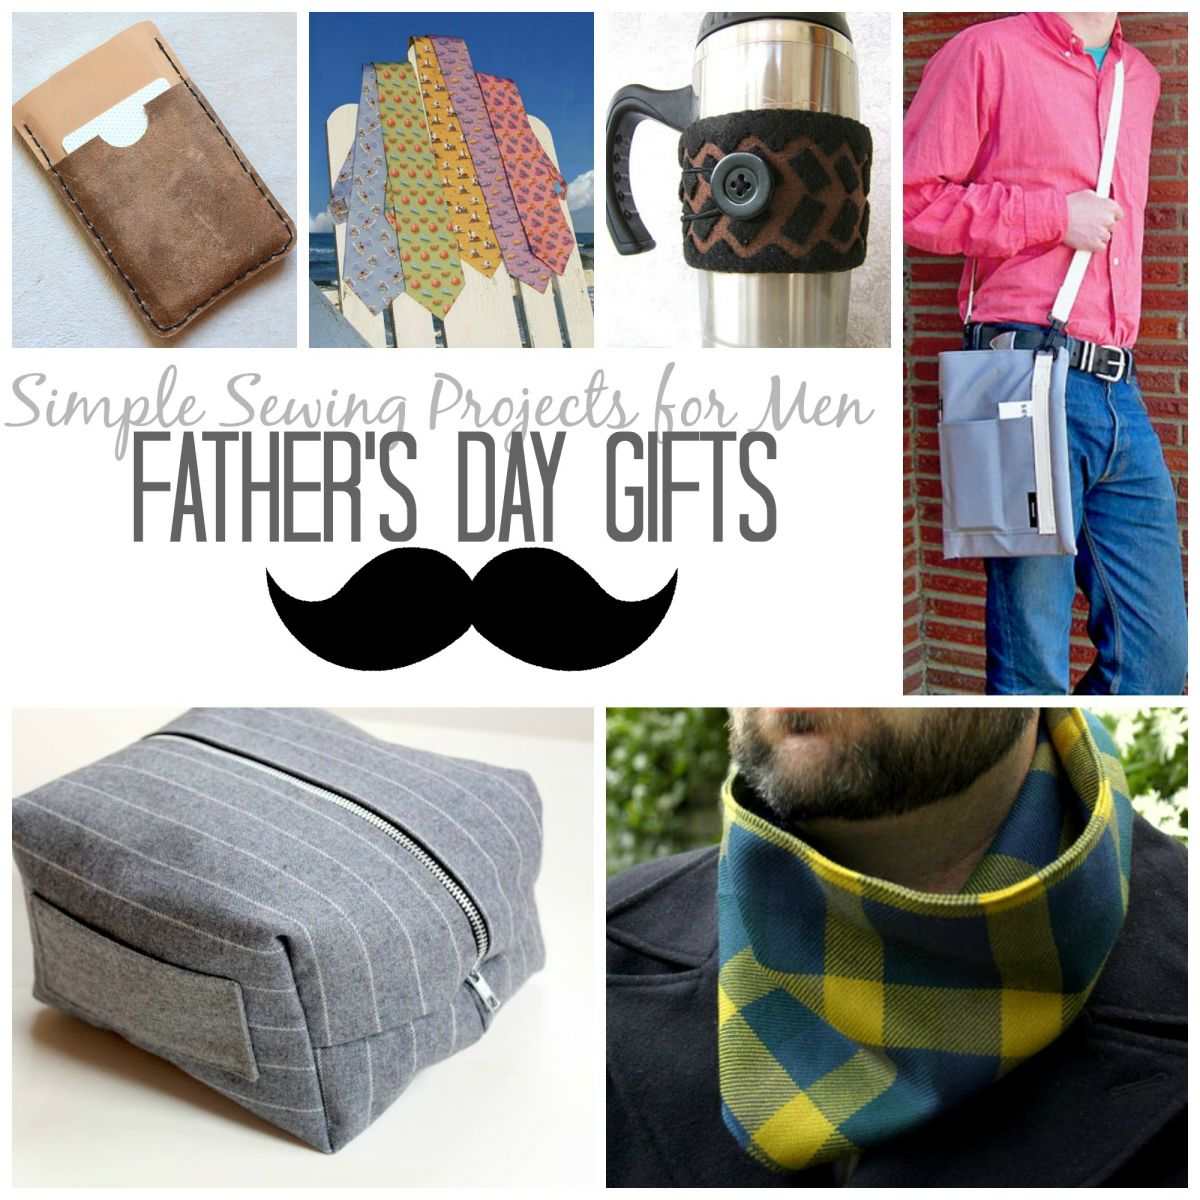 Want More Ideas For Fathers Day Gifts